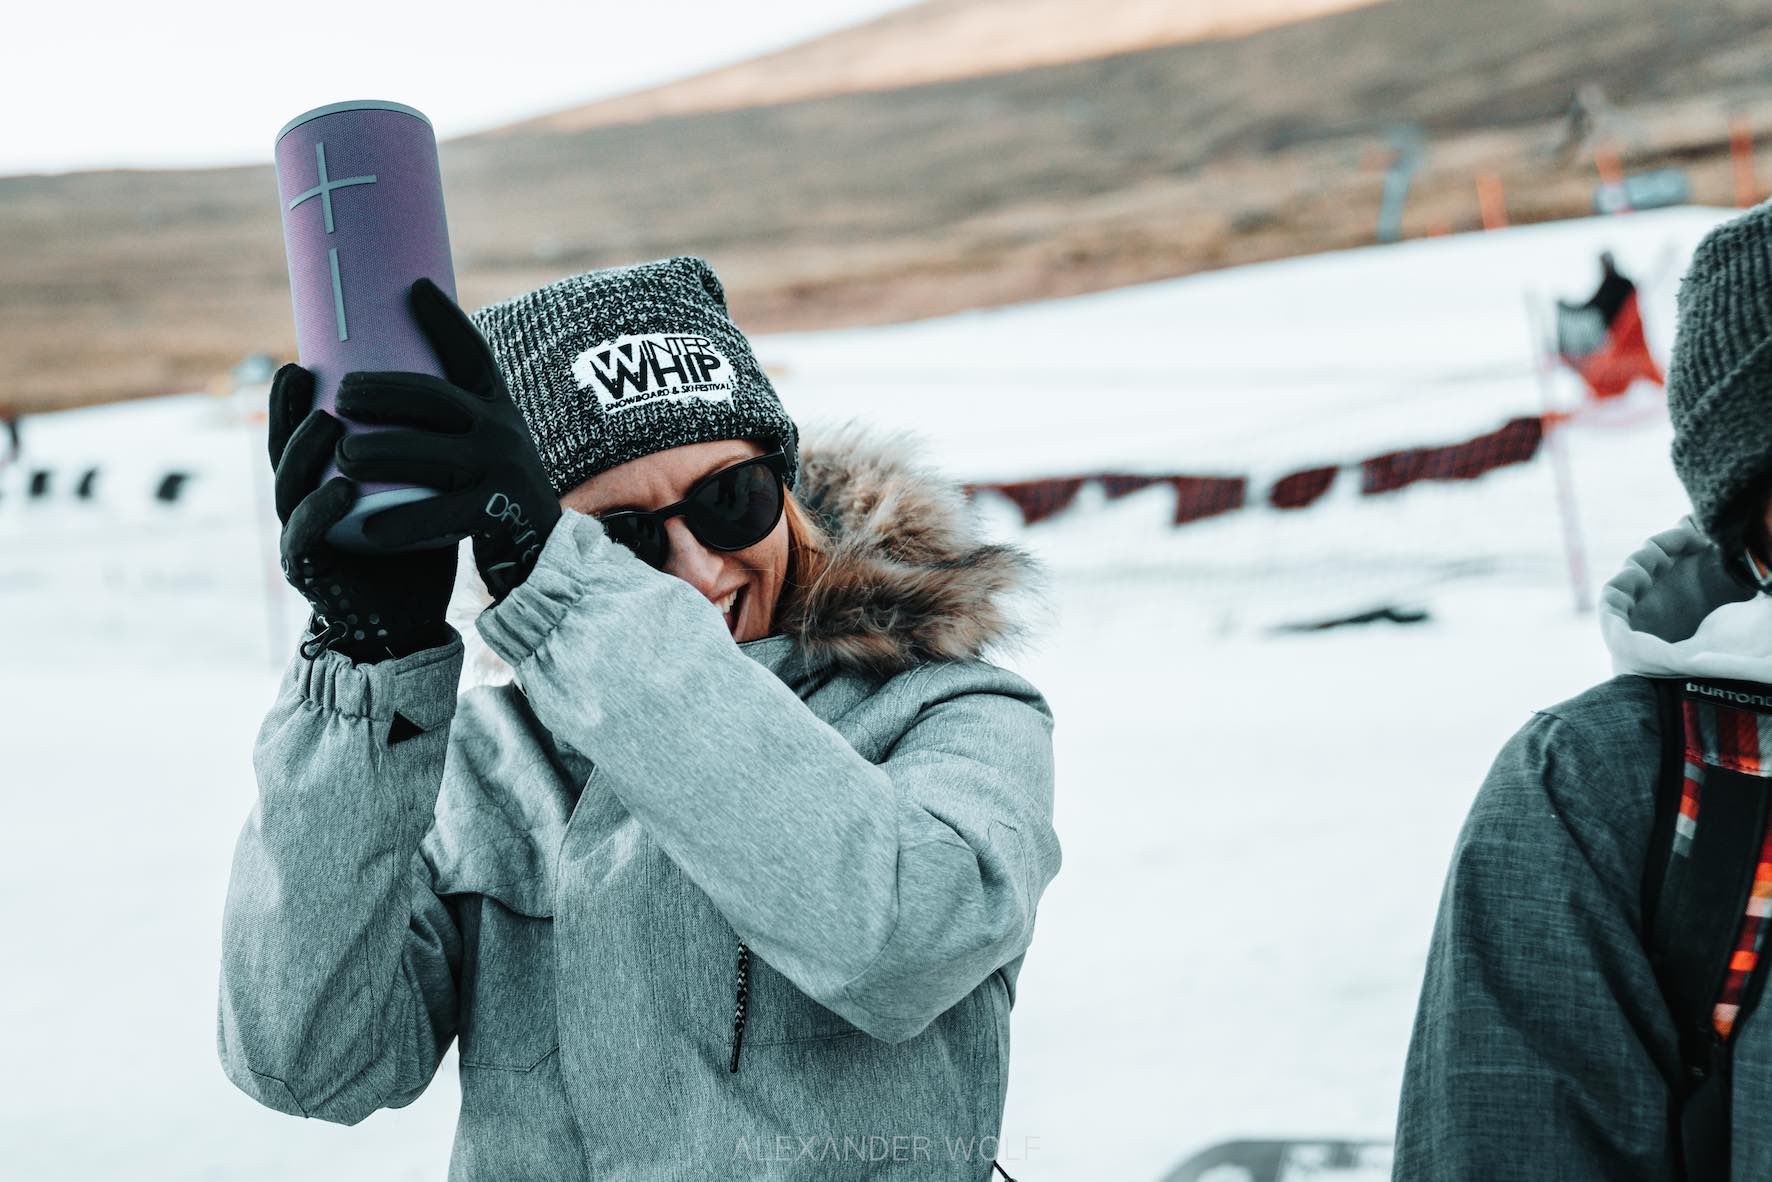 Ultimate Ears speakers providing good vibes on the Afriski Mountain Resort slopes during Winter Whip